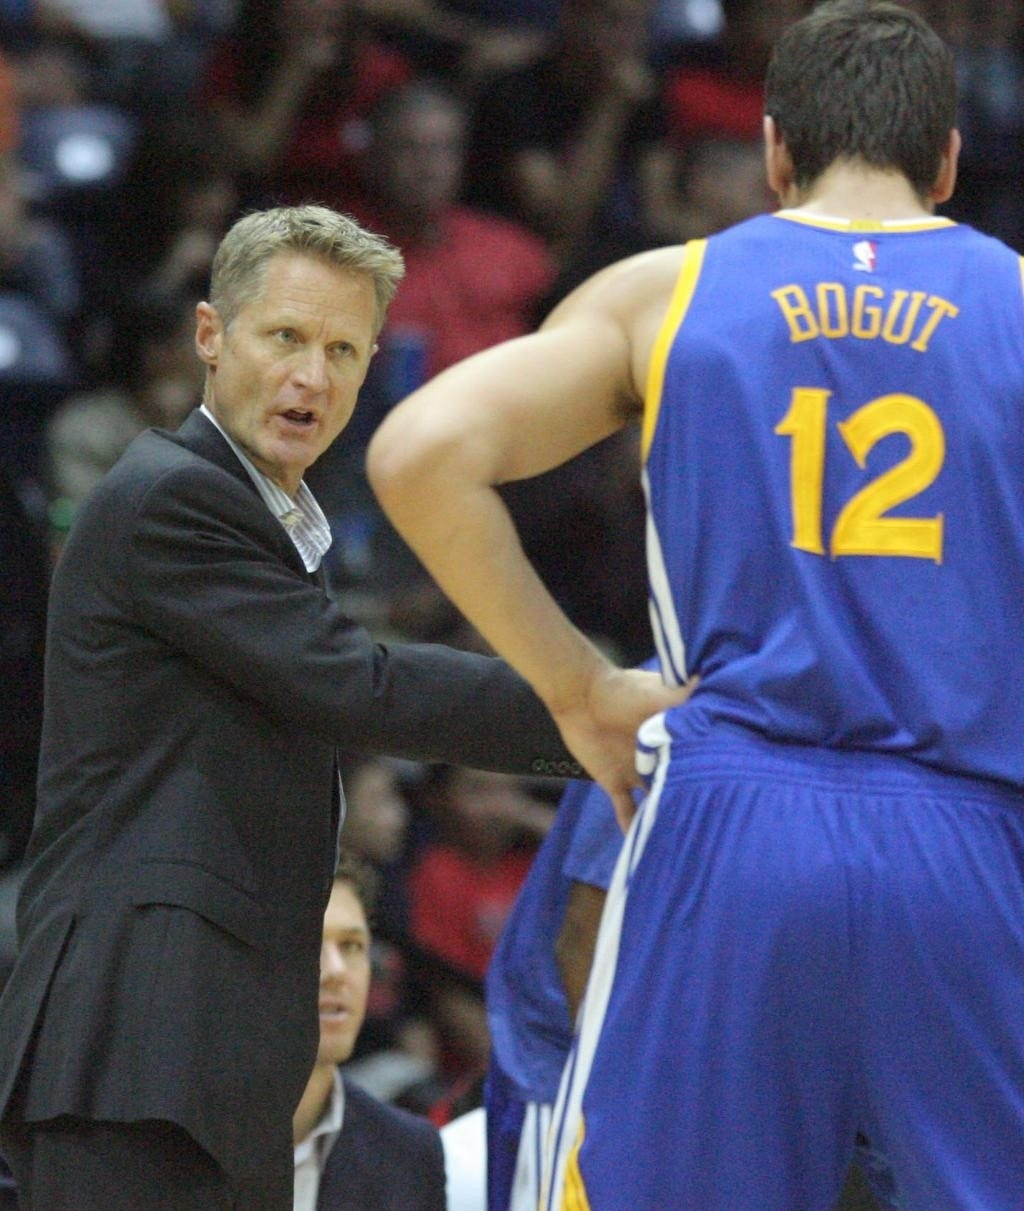 Golden State Warriors hoping new coach Steve Kerr is final piece of championship puzzle | Fox News